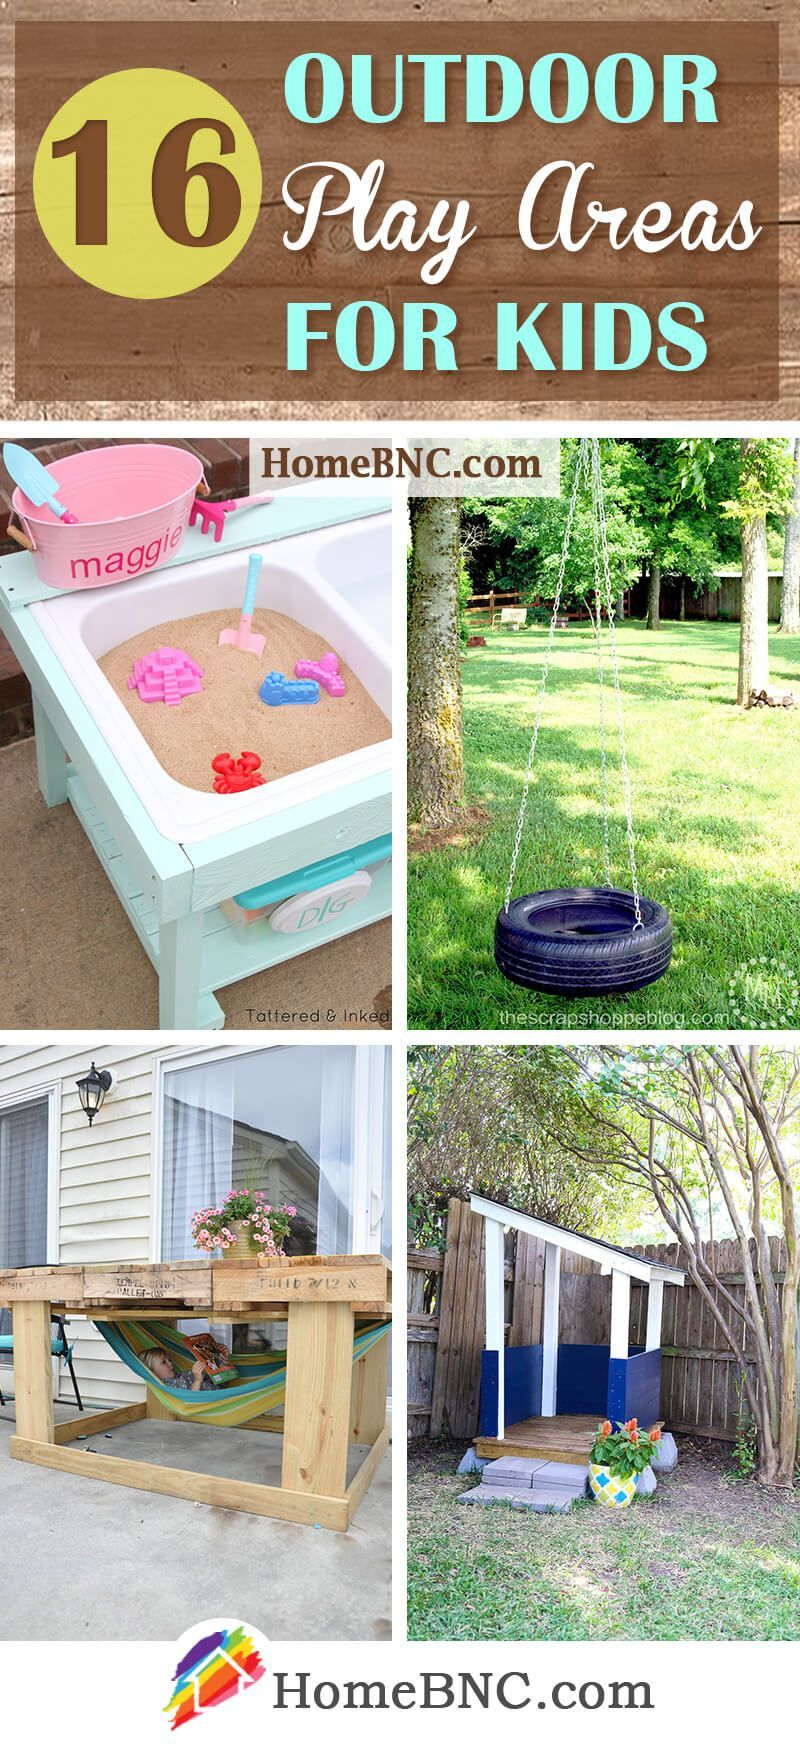 16 Best Outdoor Play Areas for Kids (Ideas and Designs ...